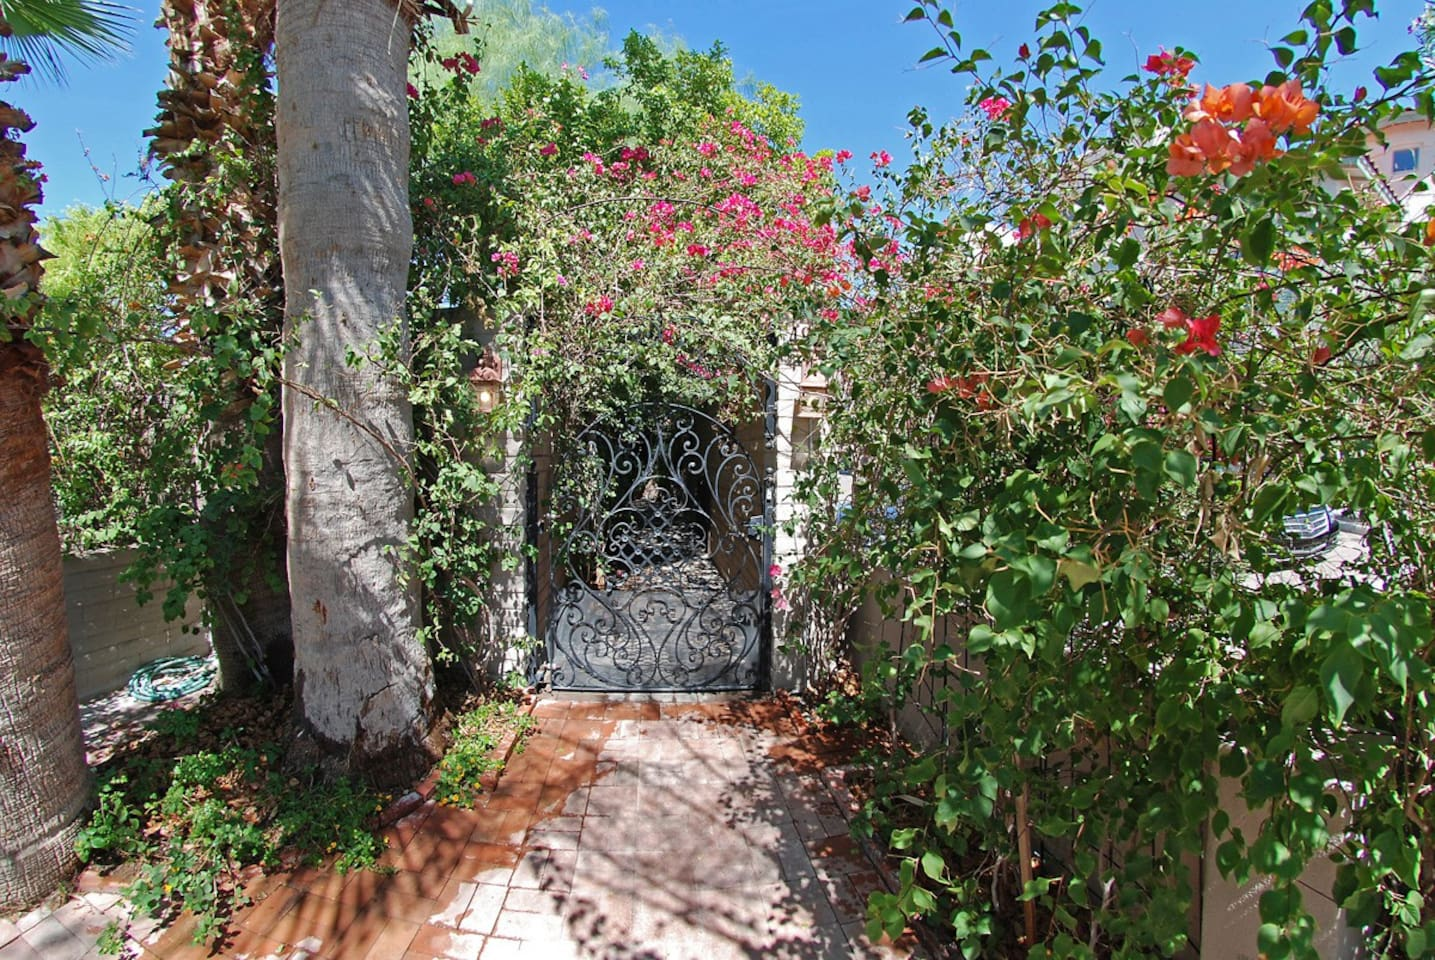 Charming private entry with hand made wrought iron gate